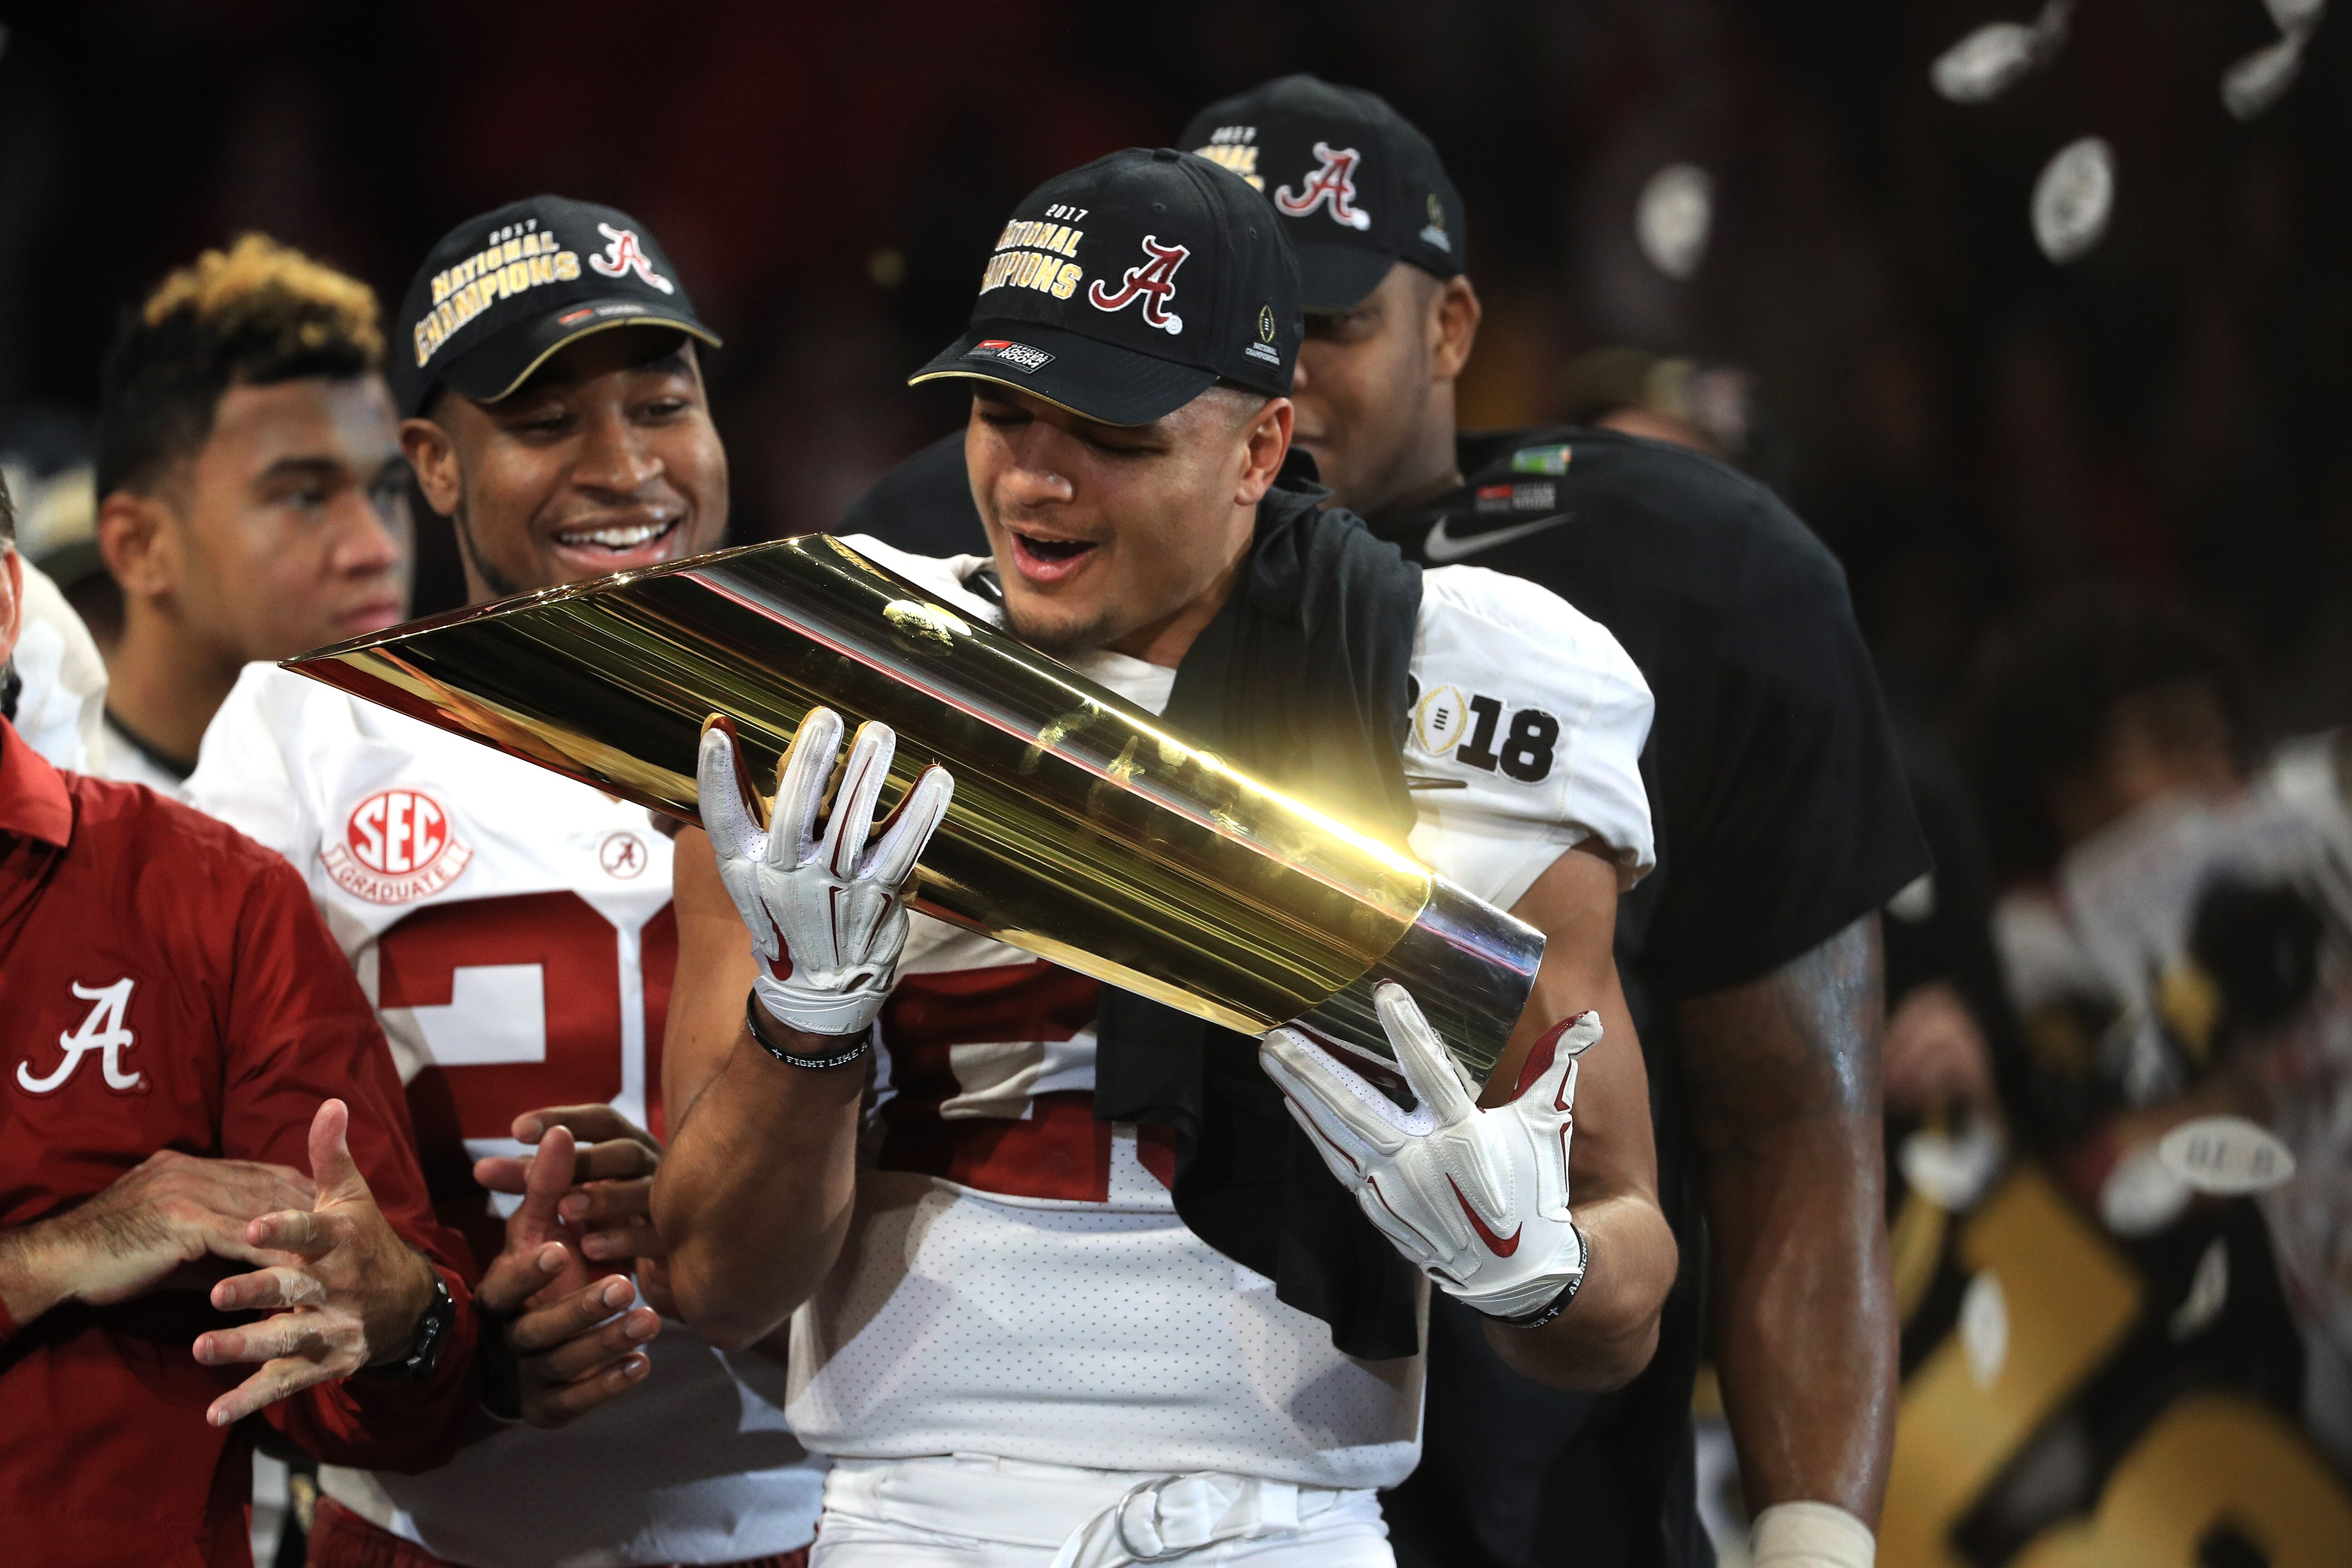 902797814-cfp-national-championship-presented-by-at.jpg